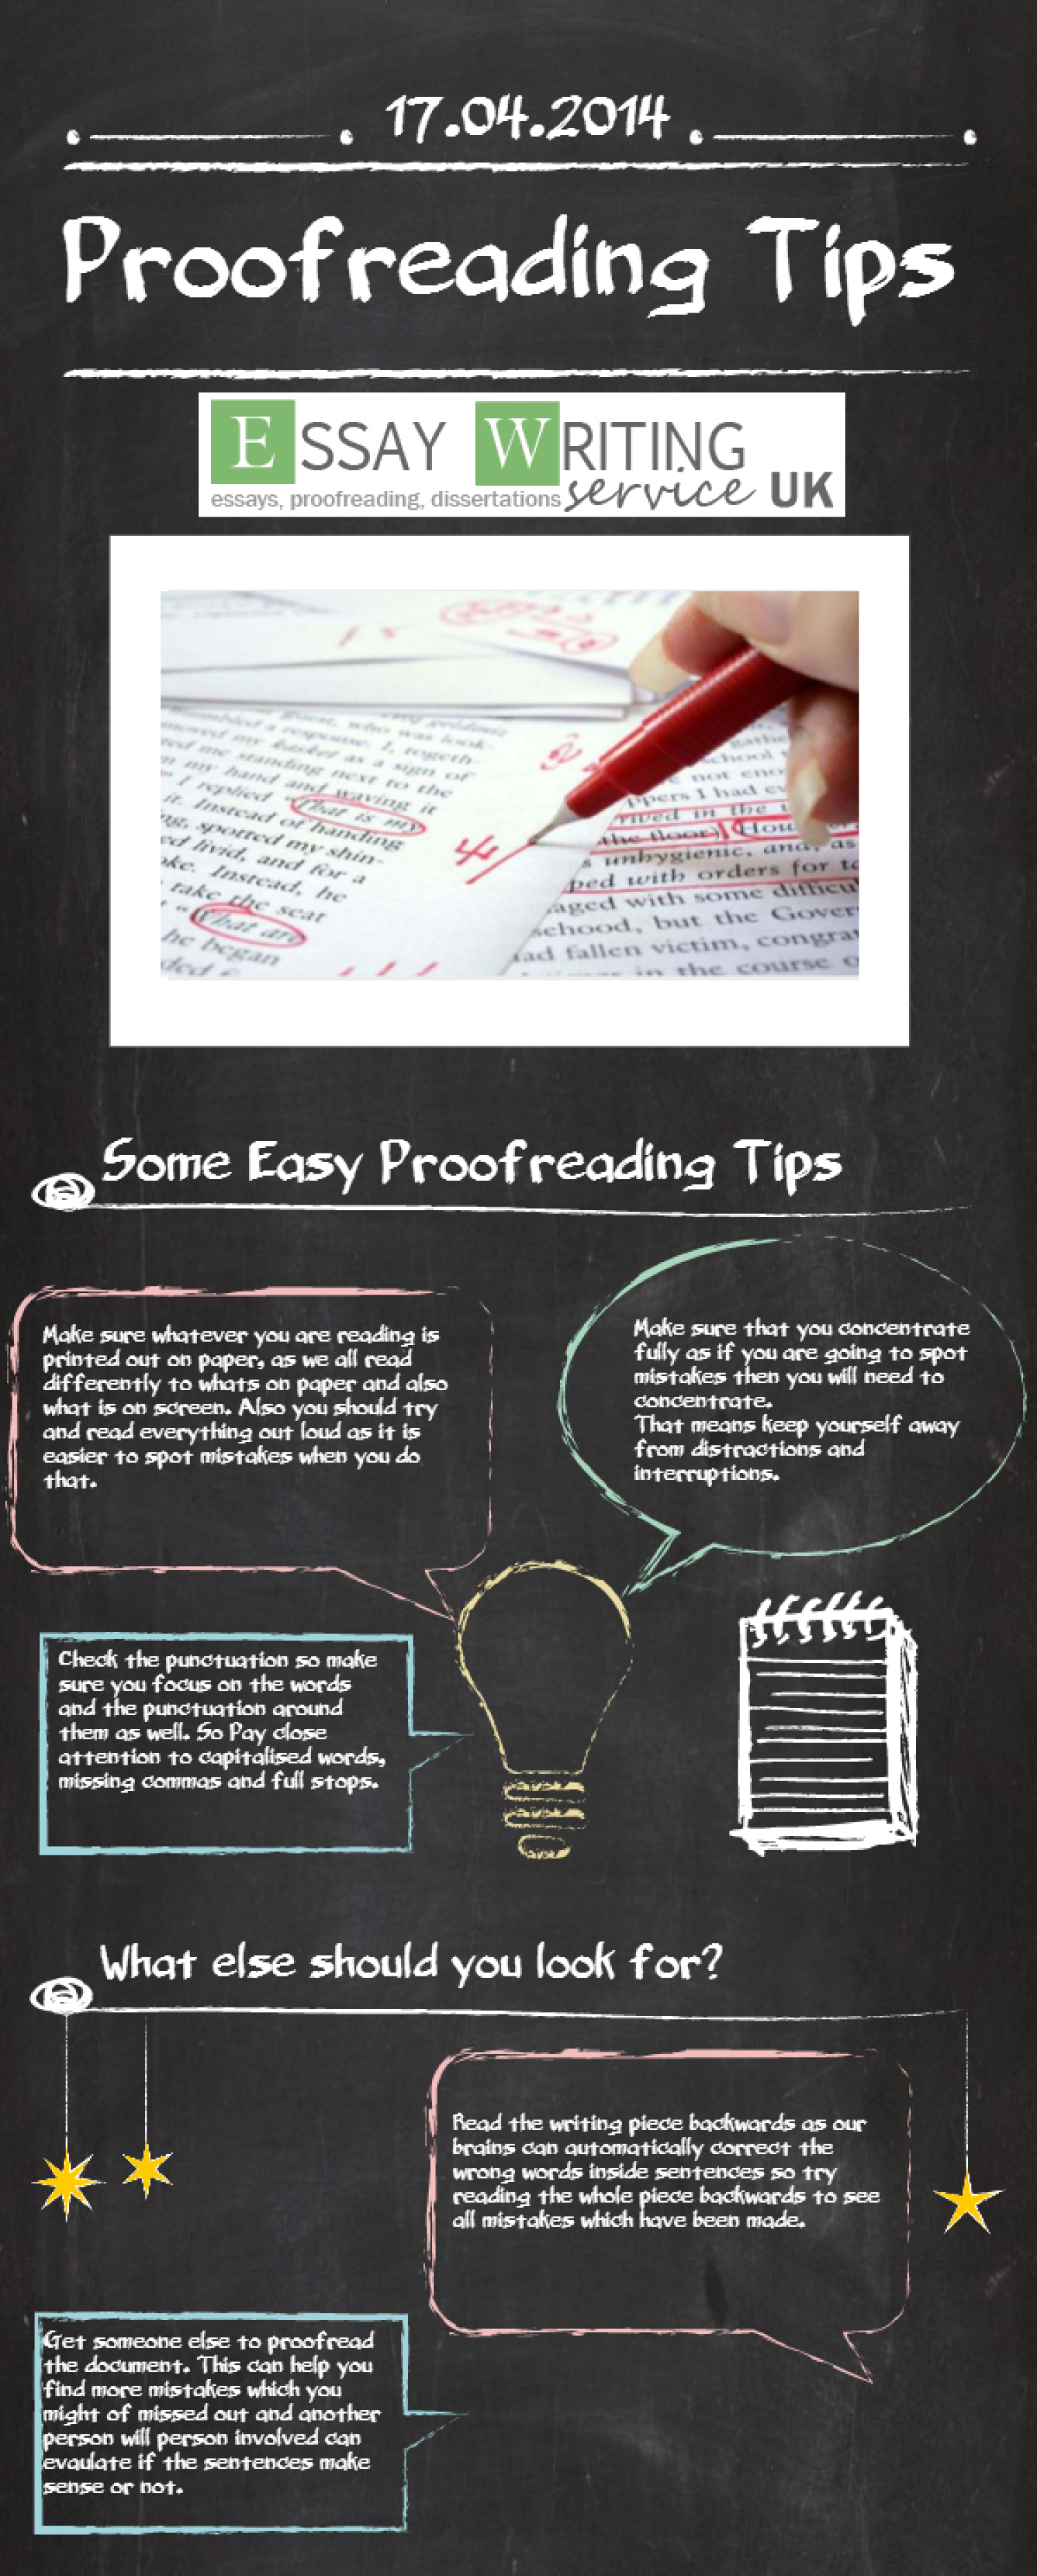 Proofreading Tips Infographic